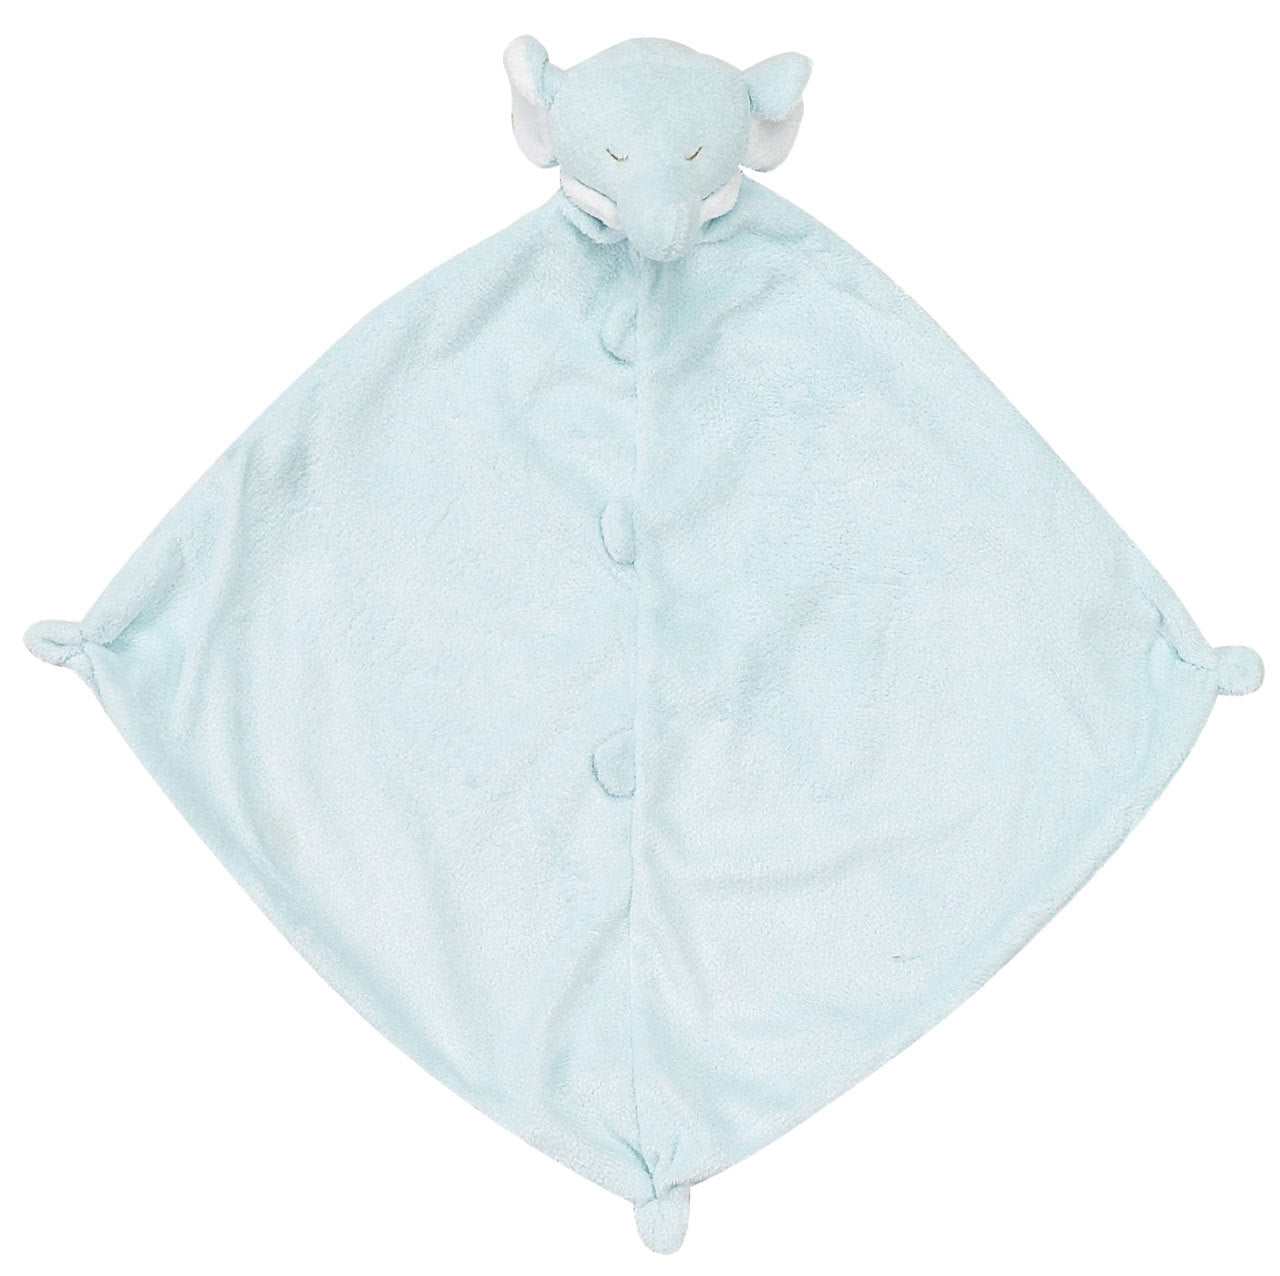 Angel Dear - Lovie Blanket - Elephant (Blue)